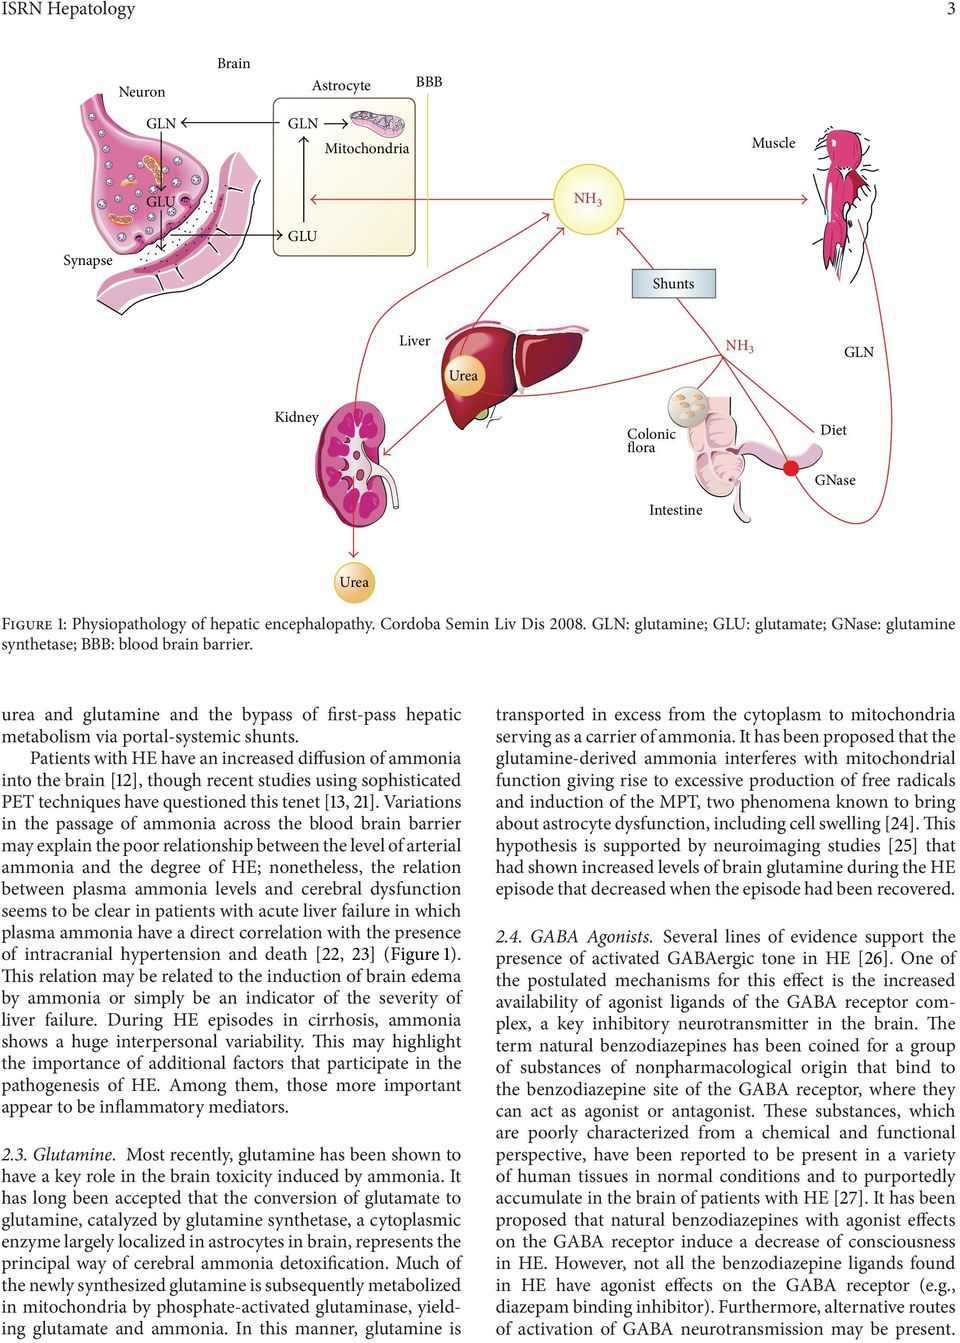 urea and glutamine and the bypass of first-pass hepatic metabolism via portal-systemic shunts.